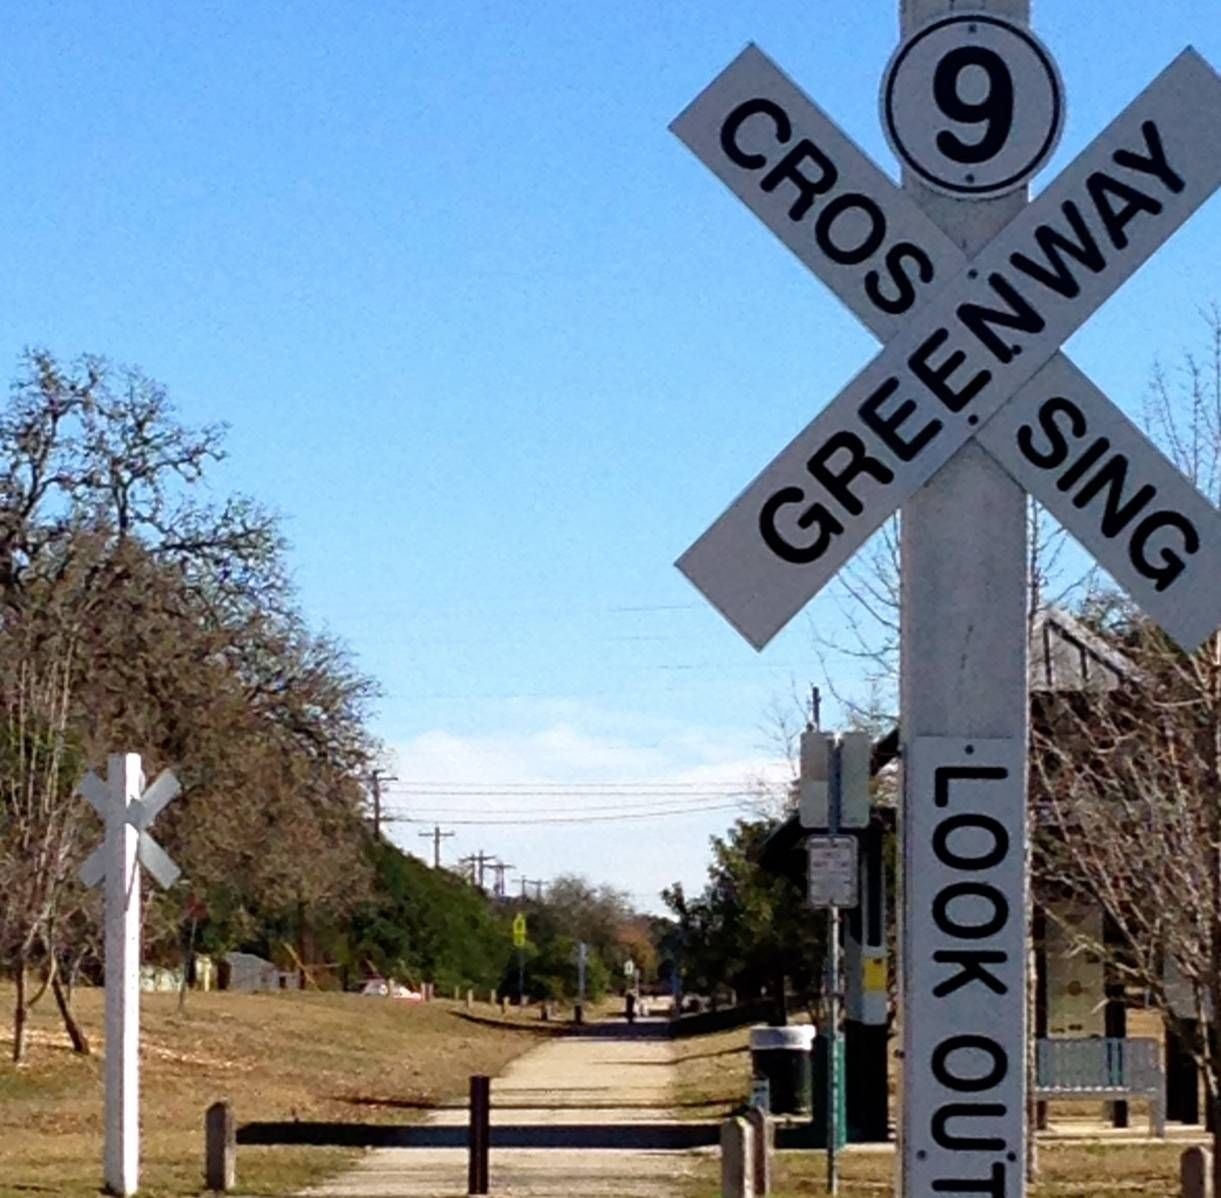 Boernes old no 9 trail boerne texas travel small